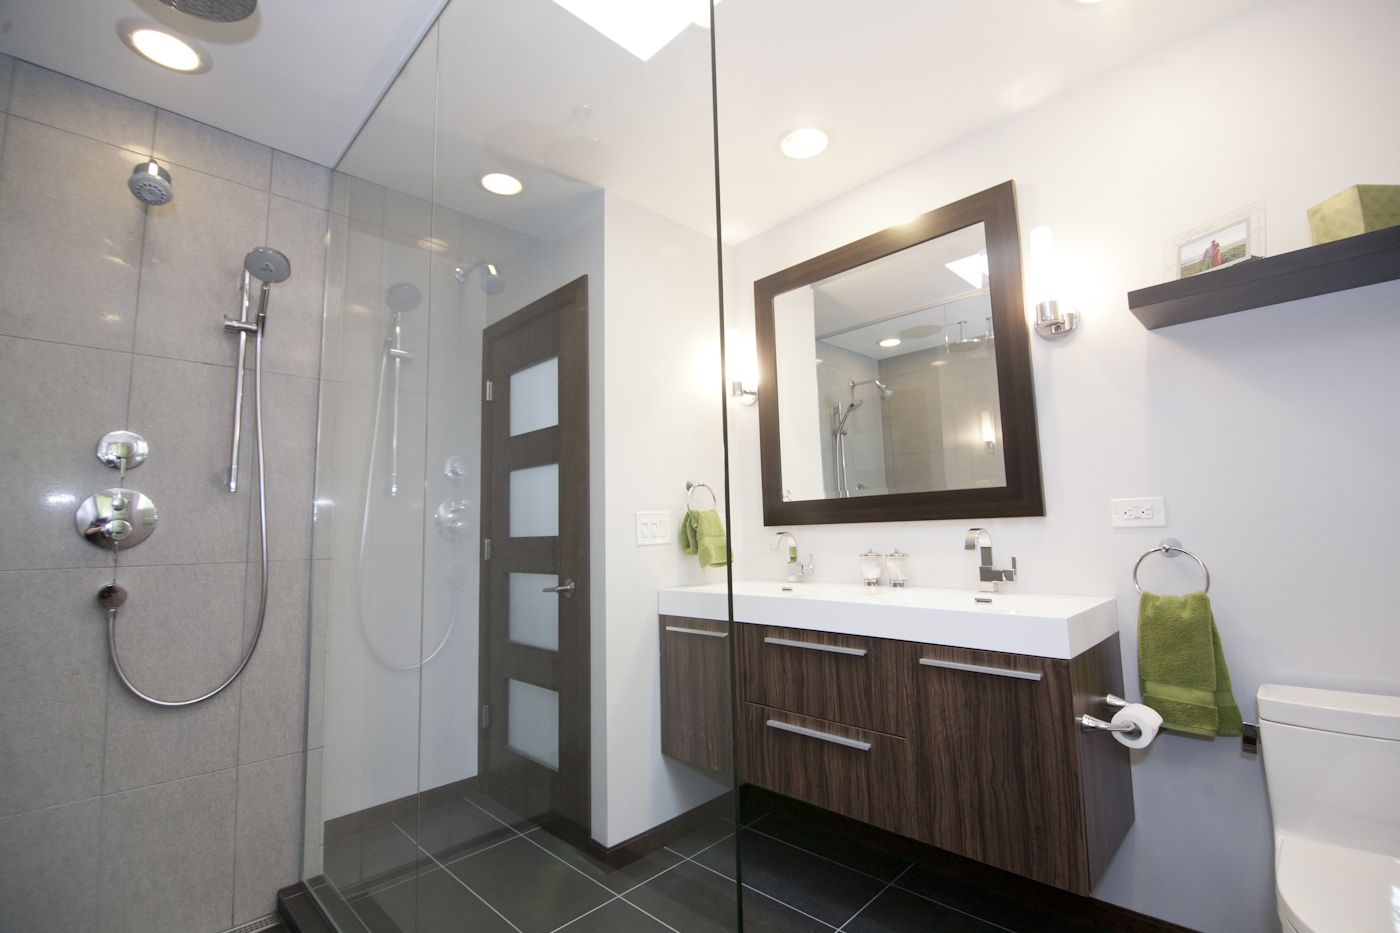 Spa Bathroom Lighting Ideas, Picture From Archway